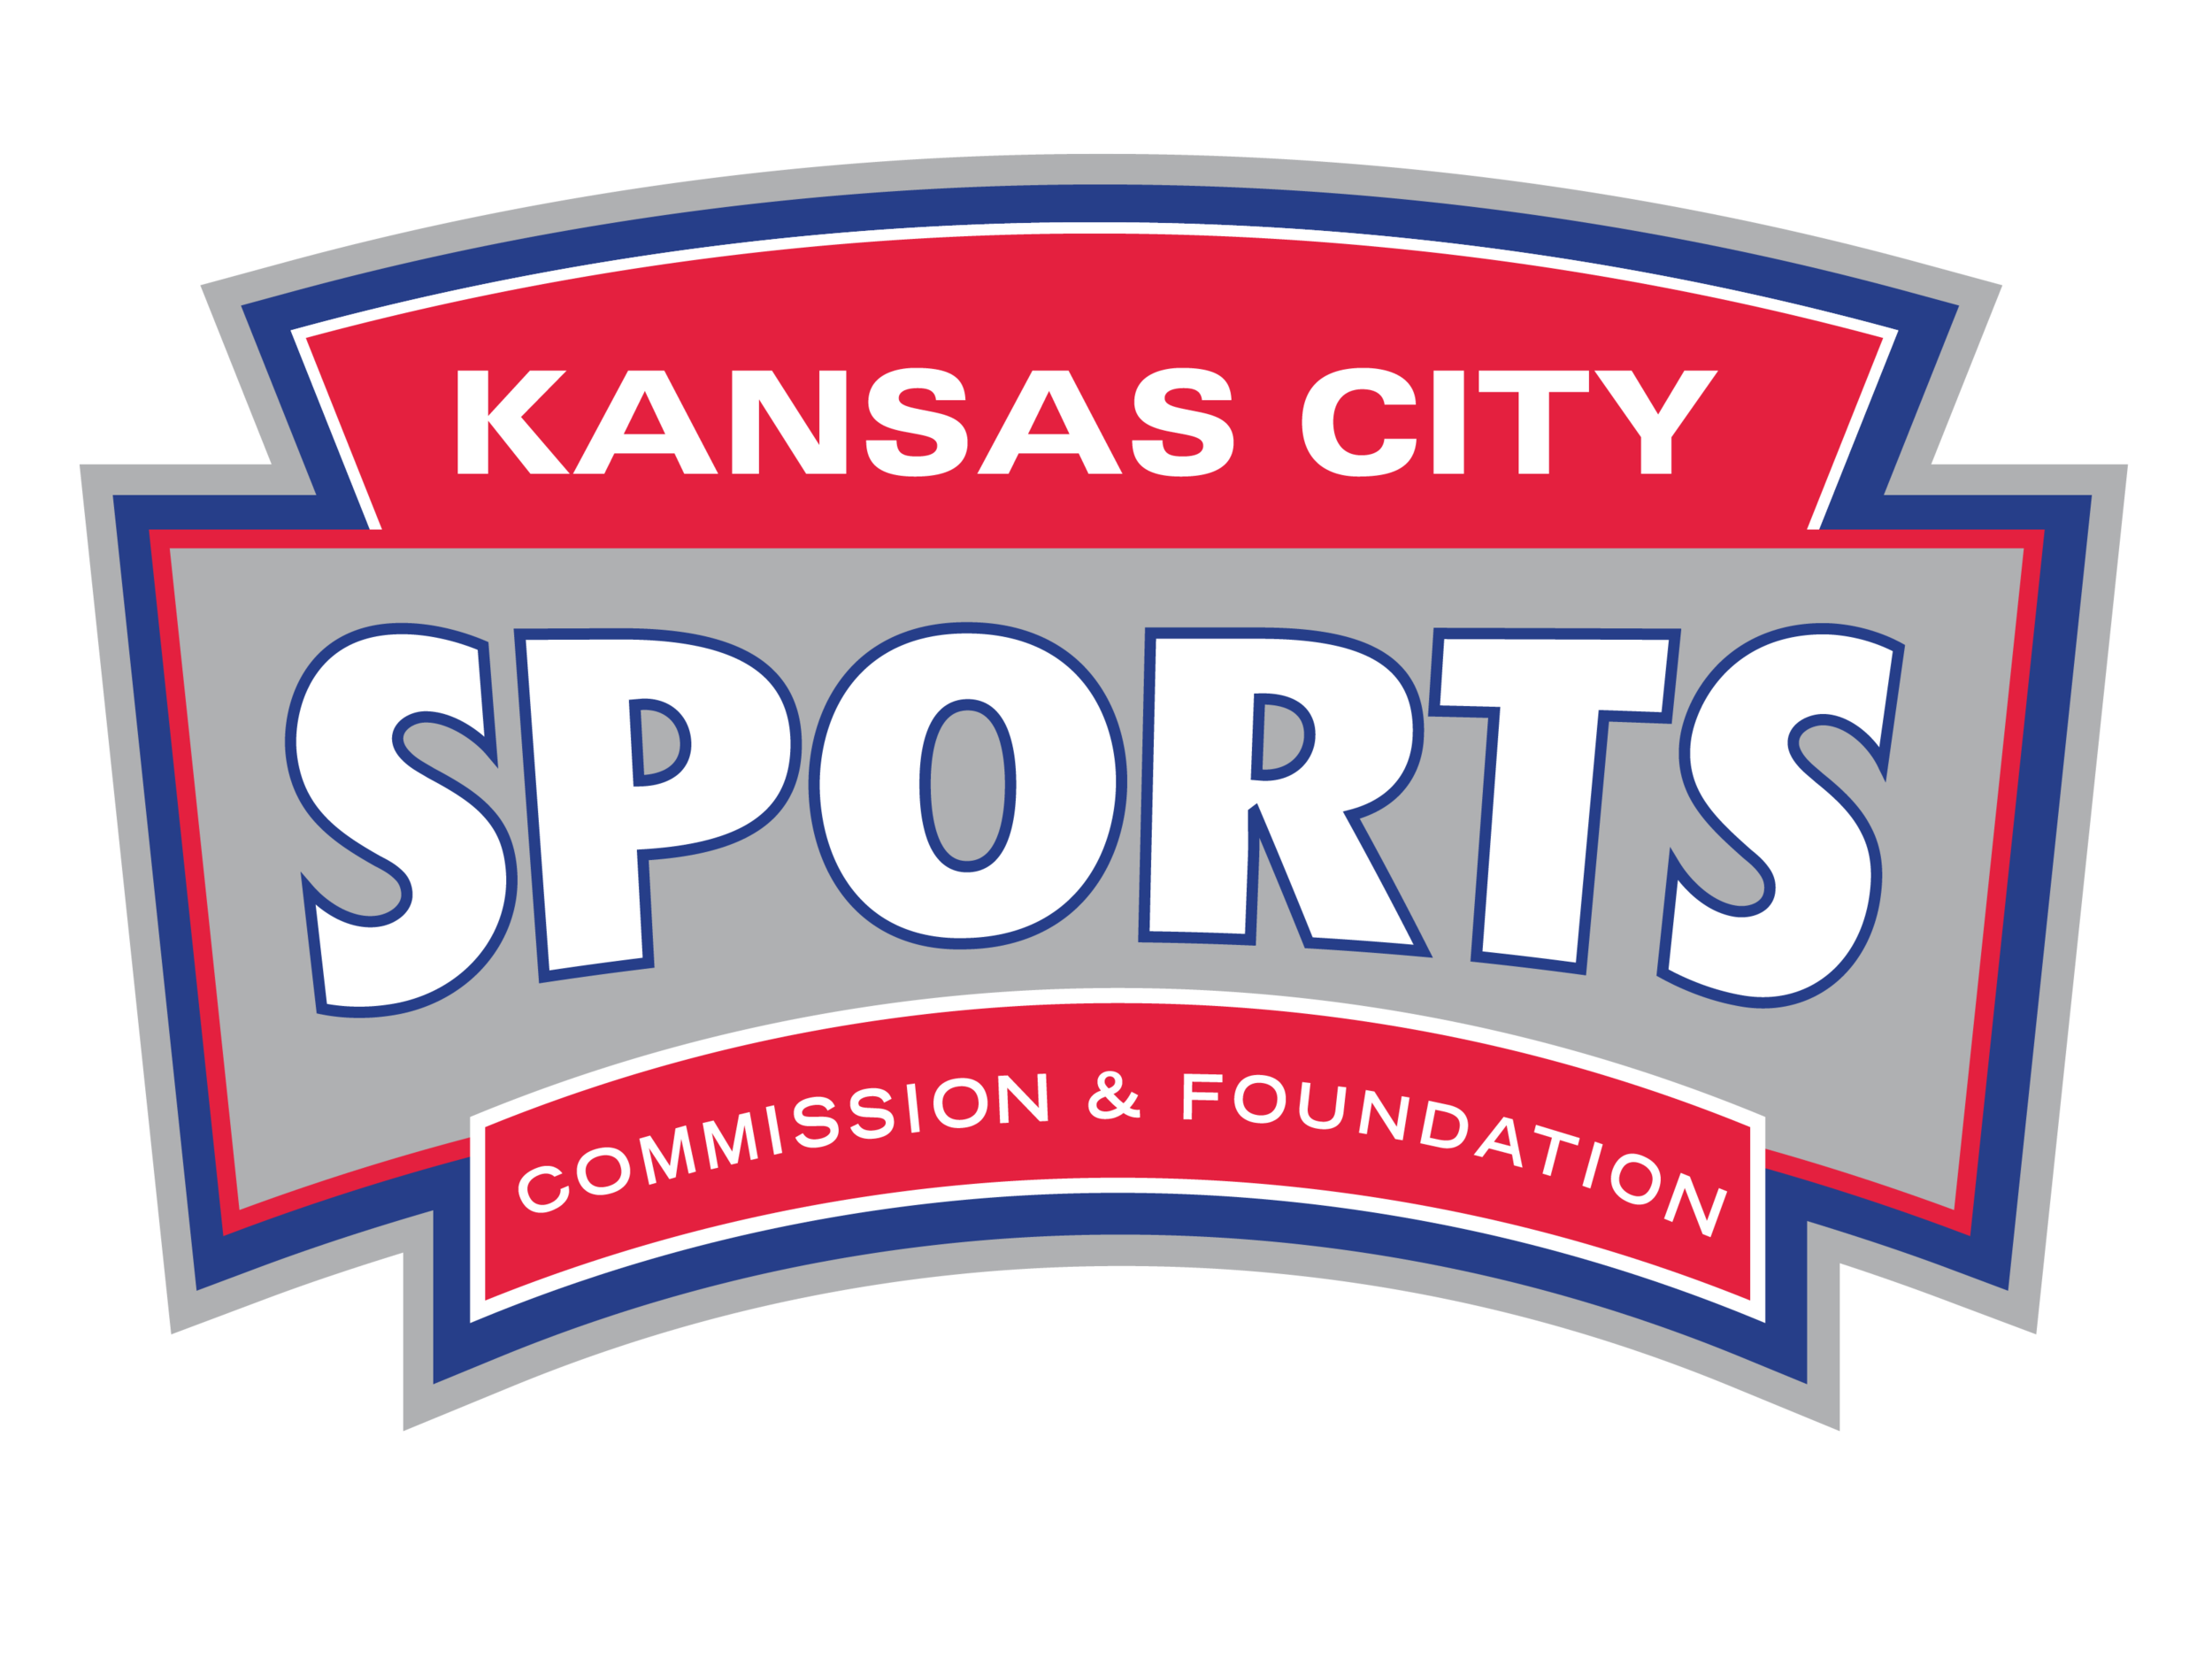 kansas city sports commissionsocial media channels - FacebookInstagramTwitterLinkedIn